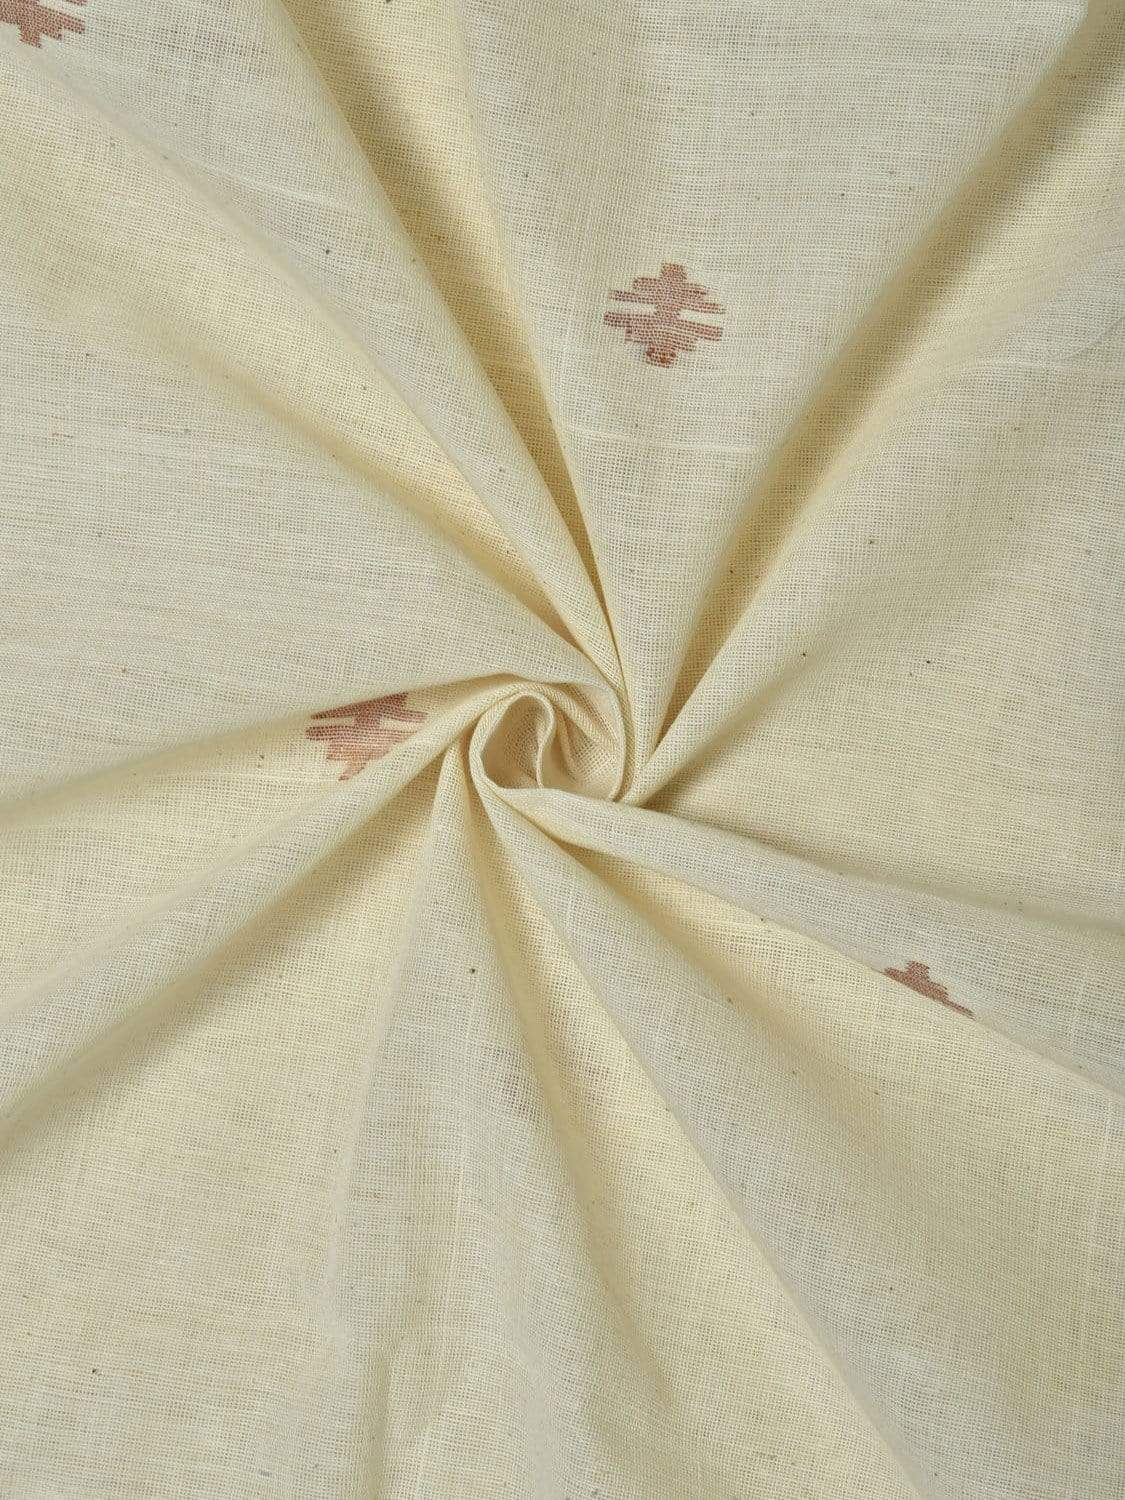 White Khadi Cotton Handloom Fabric Material with Jamdani Buta Design f0130